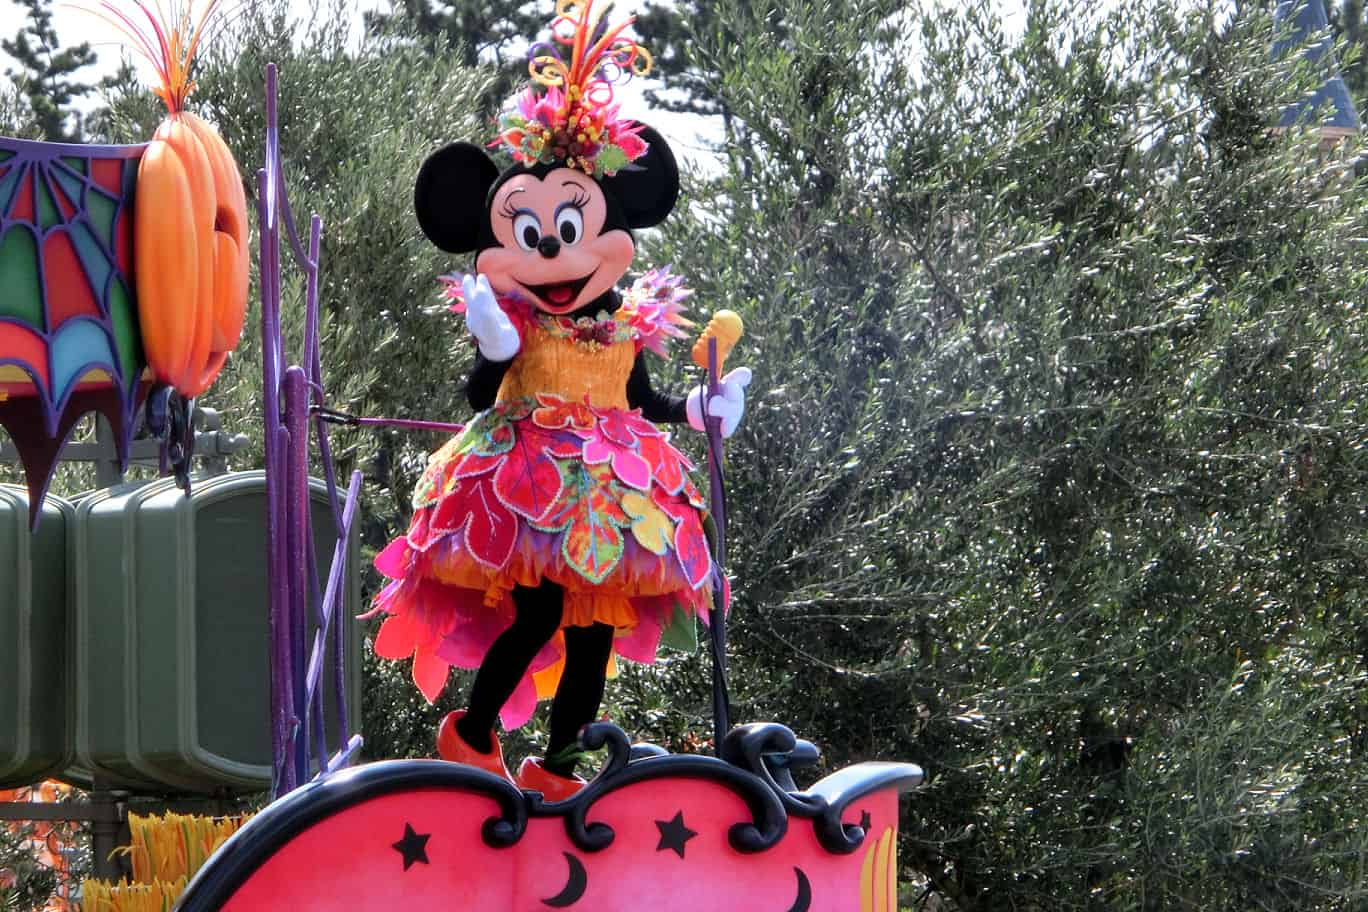 Minnie Mouse at Tokyo Disneyland during Halloween